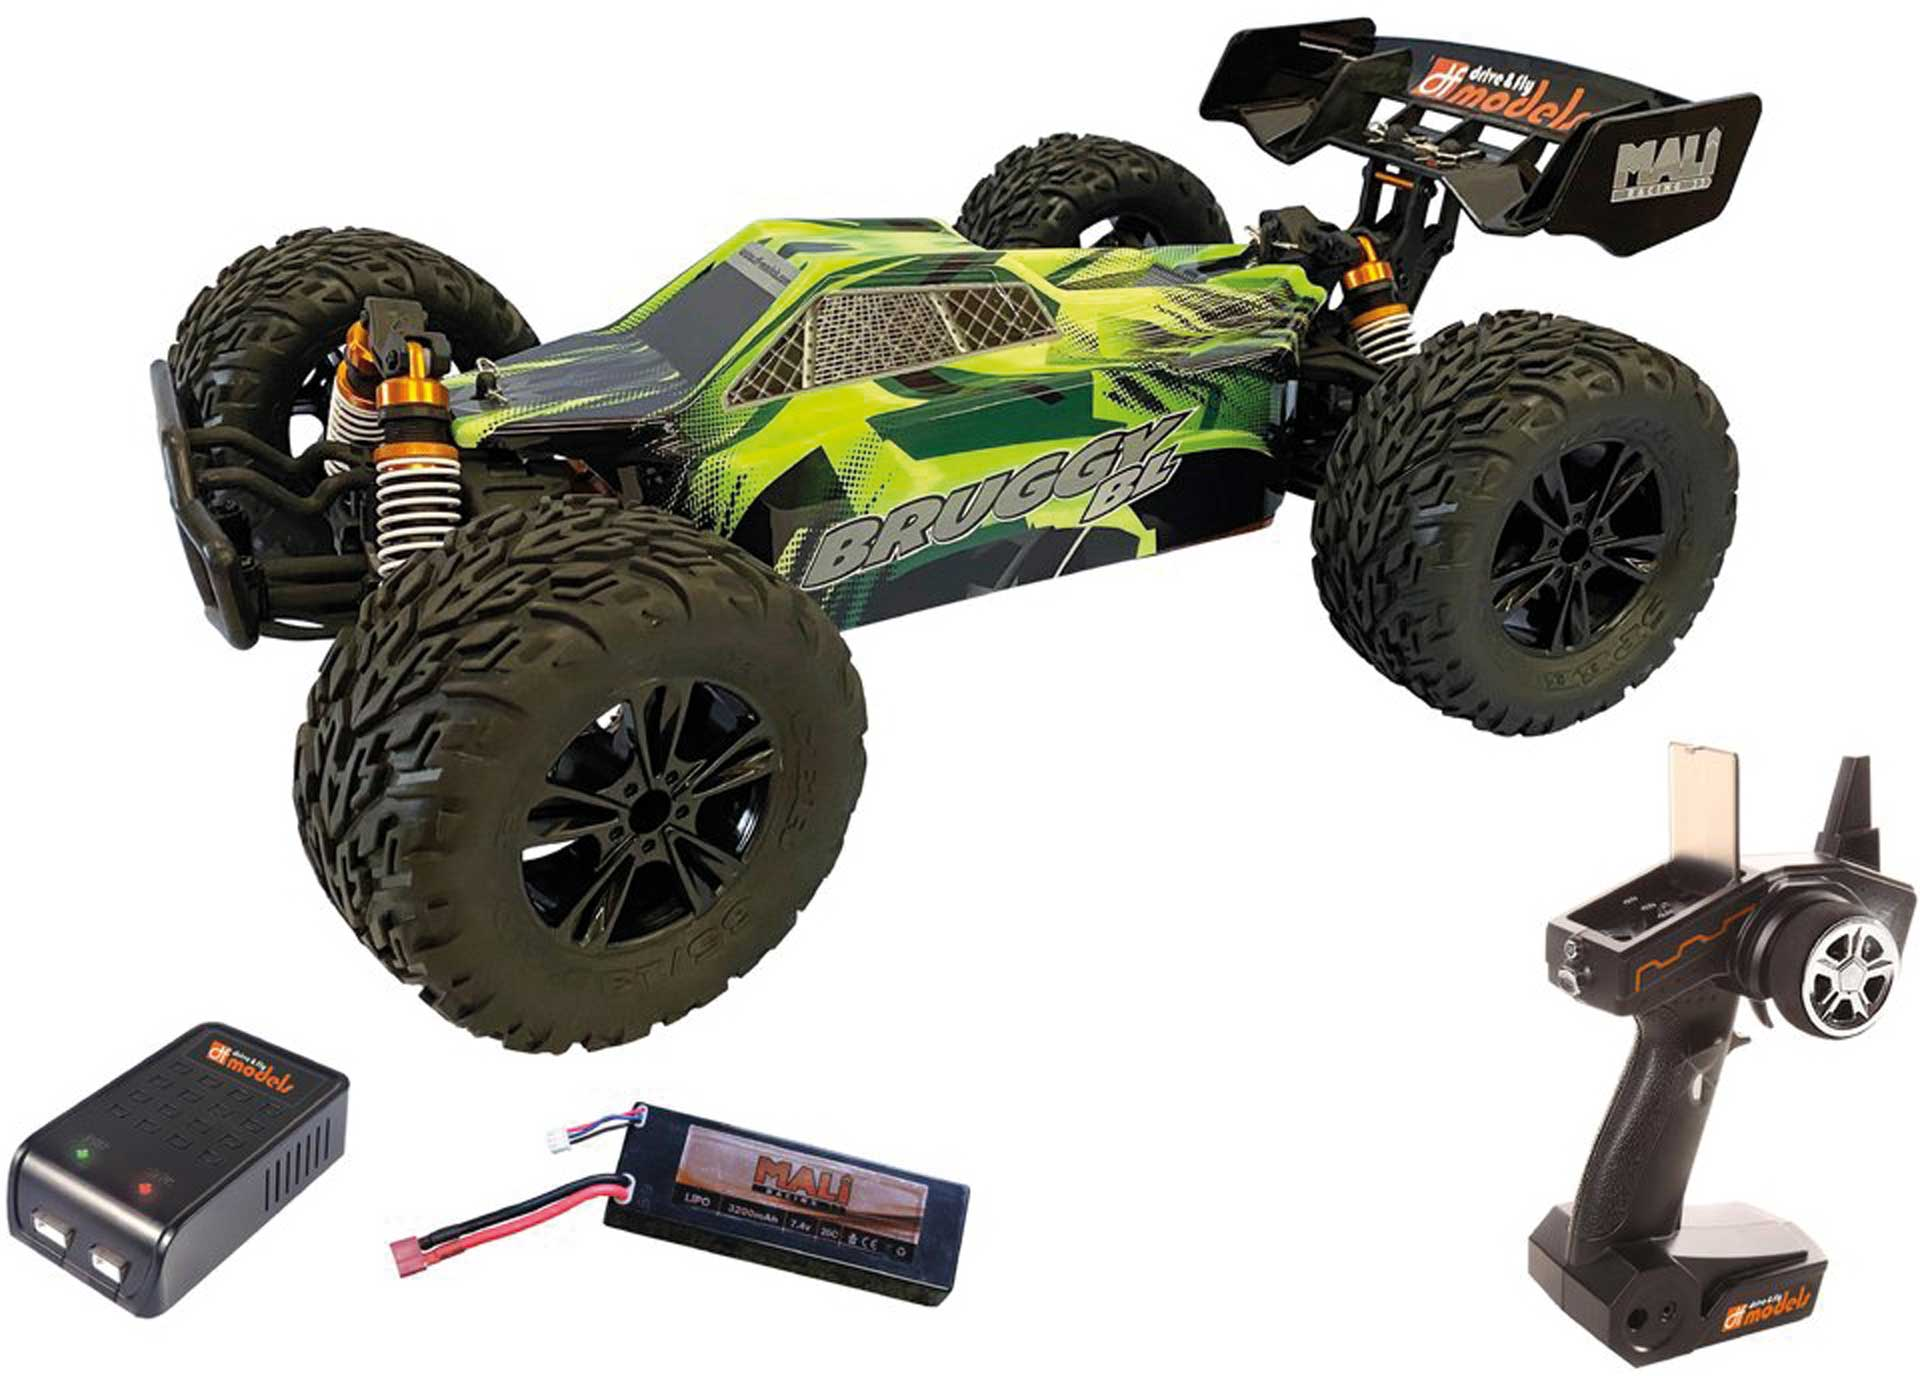 DRIVE & FLY MODELS Bruggy BL brushless 1/10XL RTR